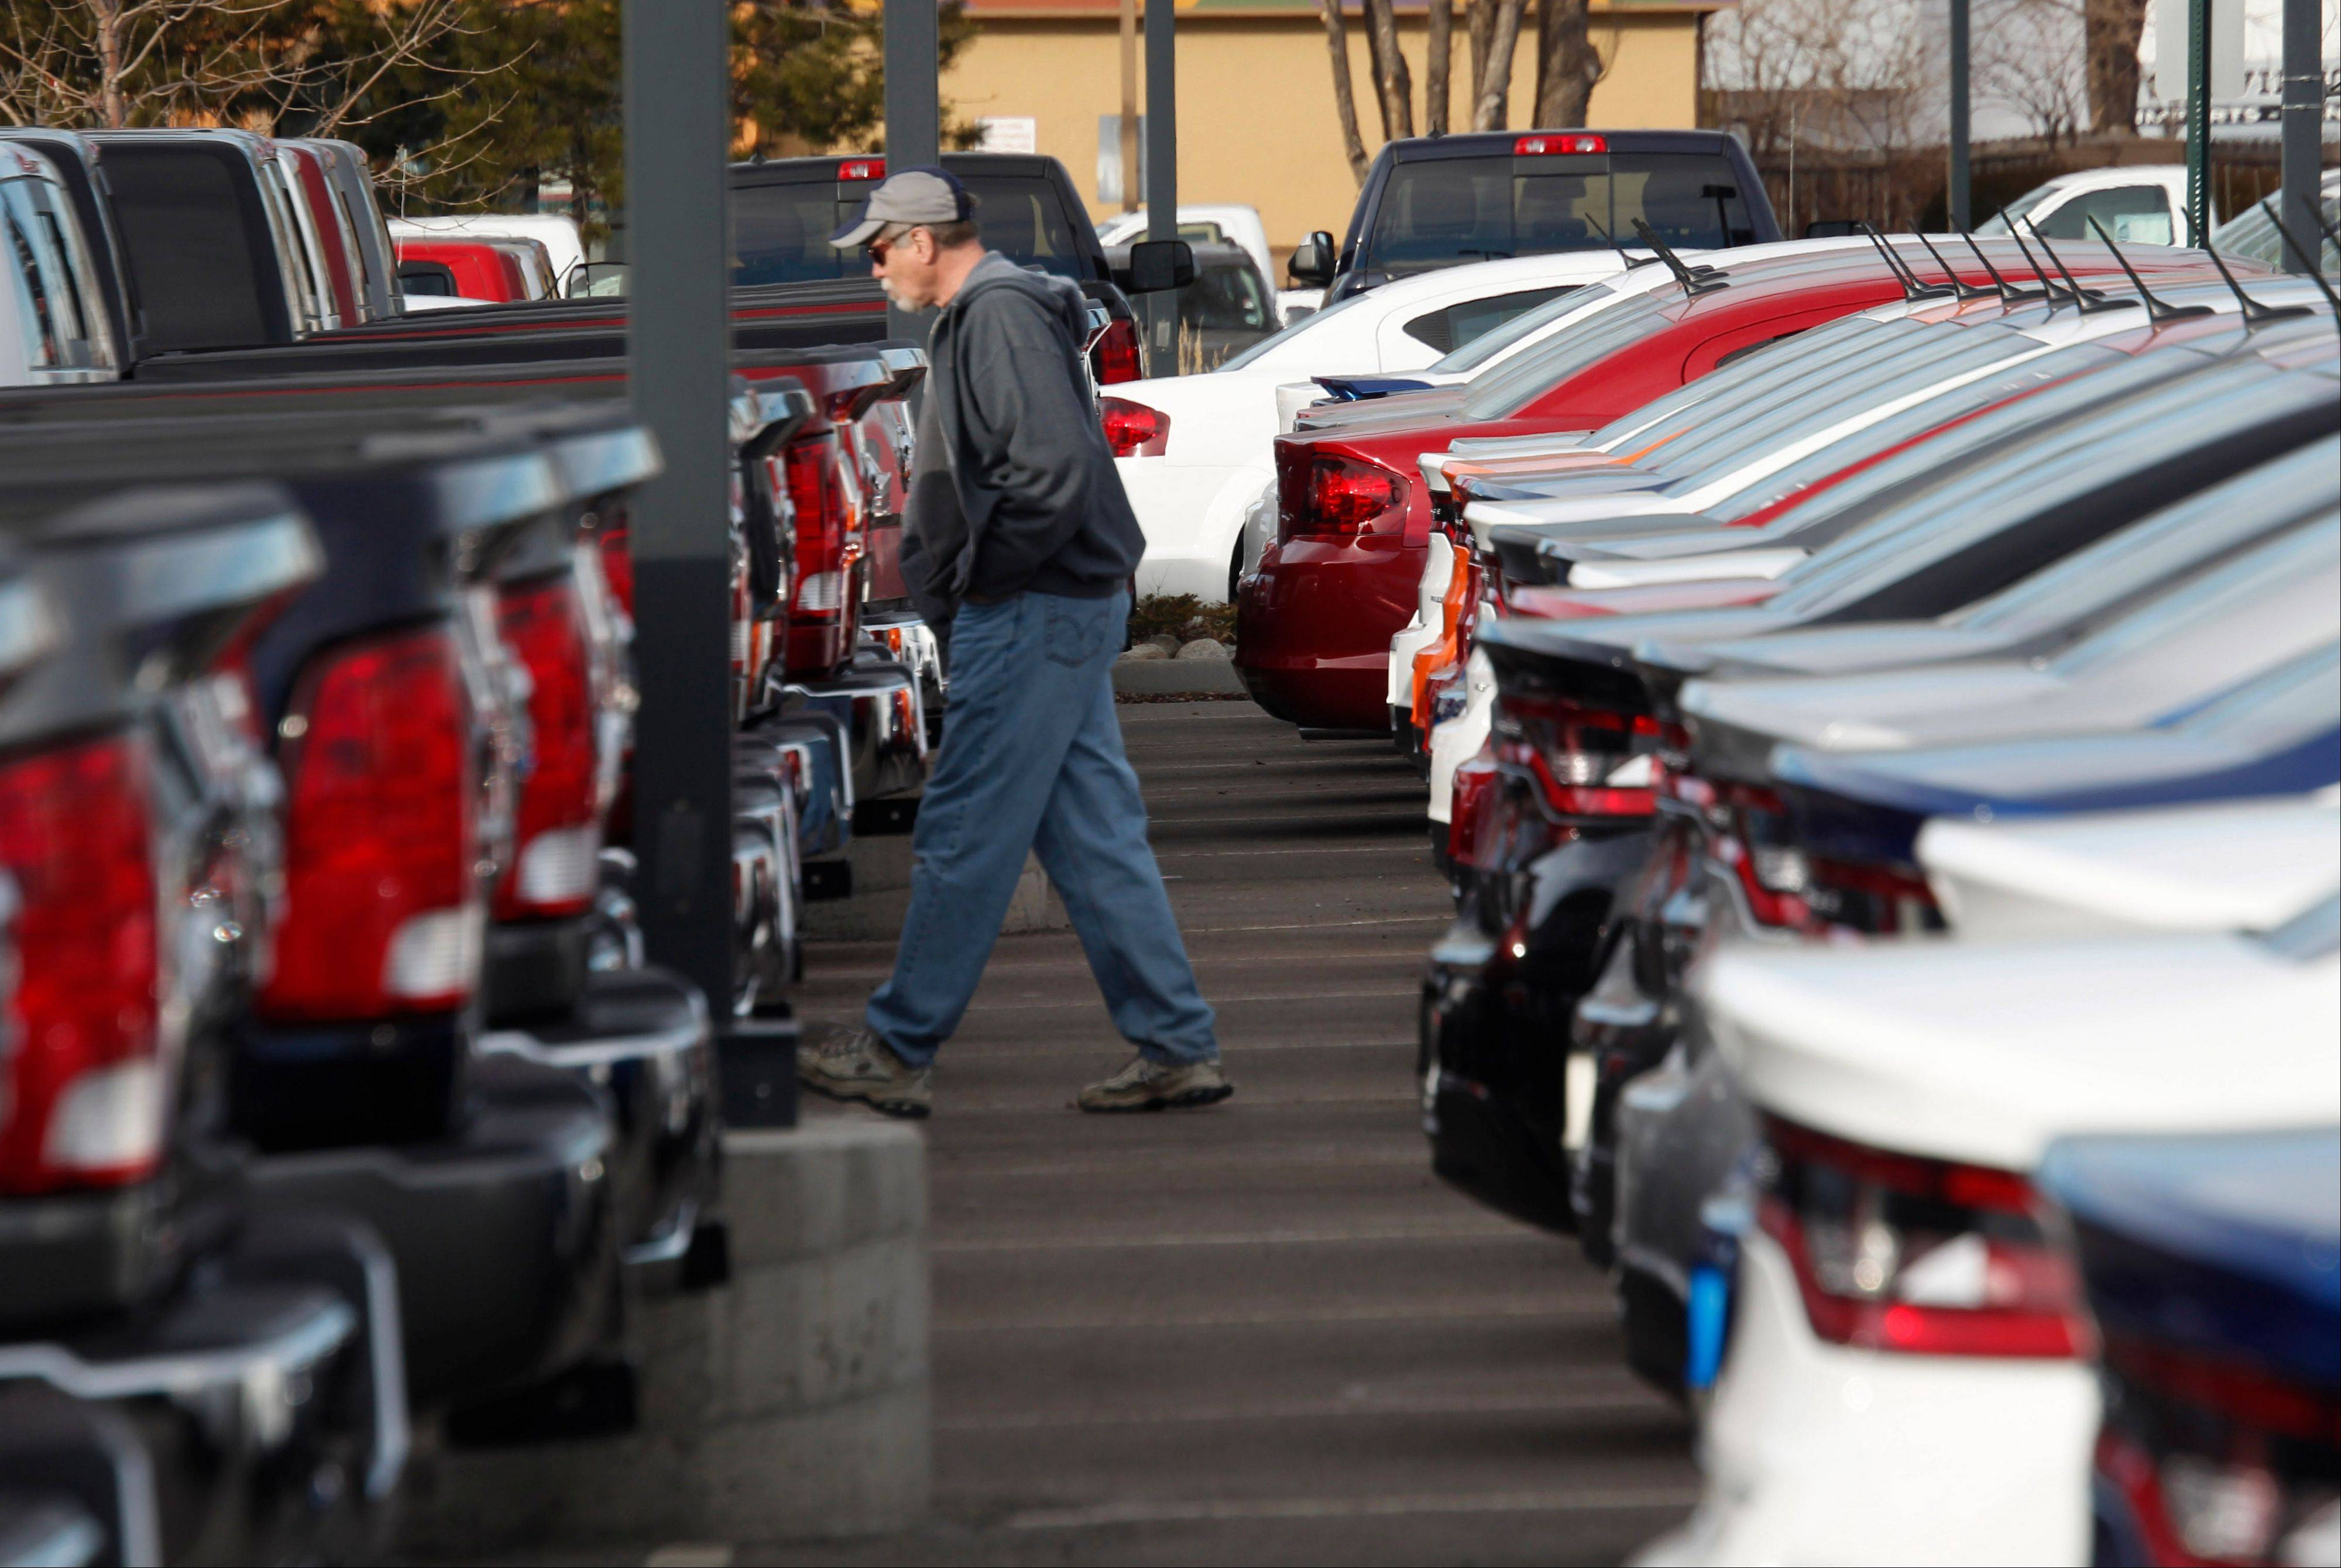 Frigid temperatures and snowy weather generally kept buyers away from auto showrooms last month, with Ford, General Motors, Toyota and Volkswagen all reporting declines from a year ago. But Chrysler, Nissan and Subaru dealers were smiling because sales ran counter to the thermometer and were up for all three brands.